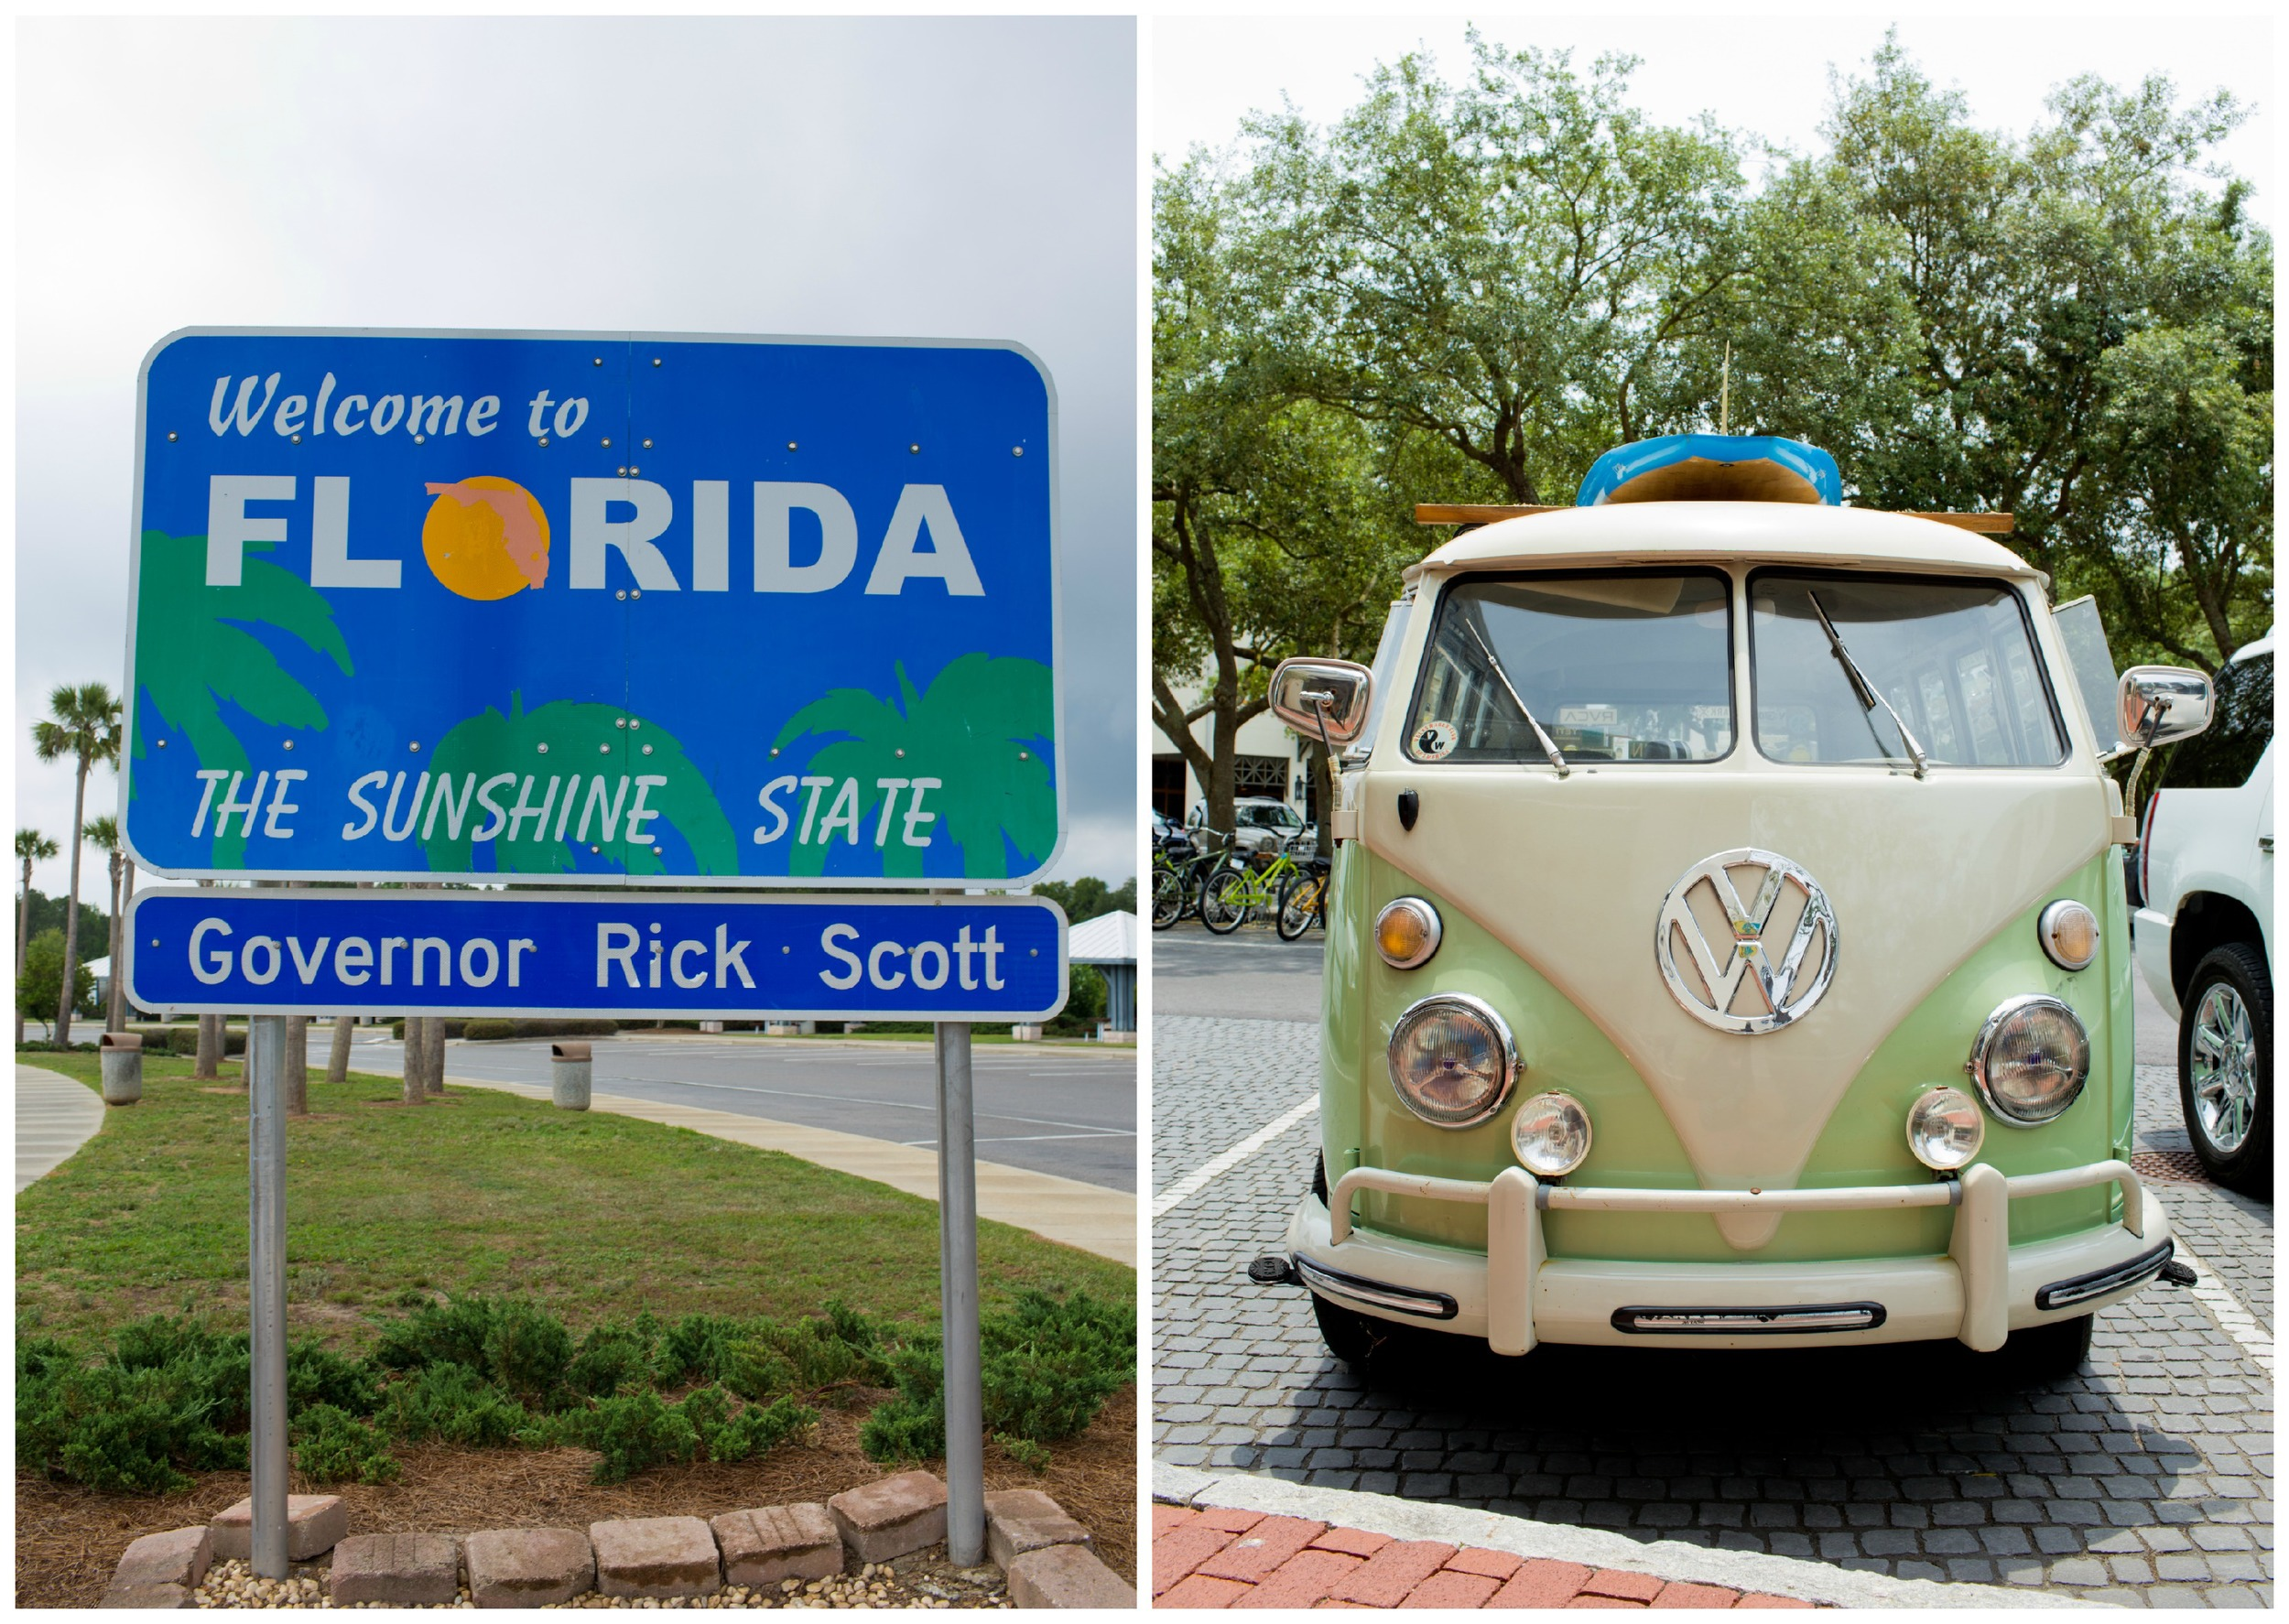 Florida vacation (welcome sign and retro VW bus)